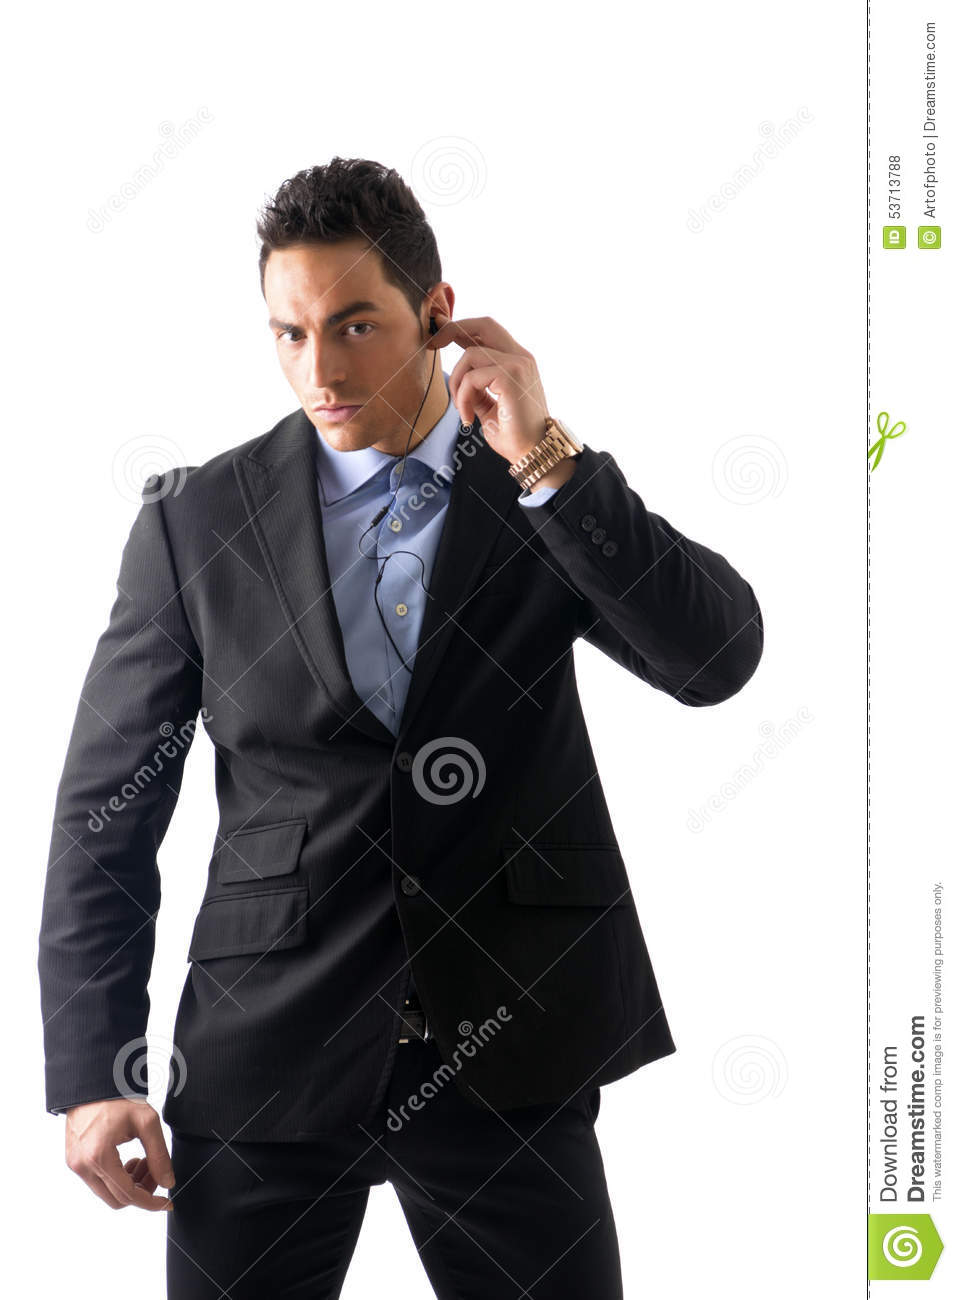 Elegant man ressed as bodyguard or security agent